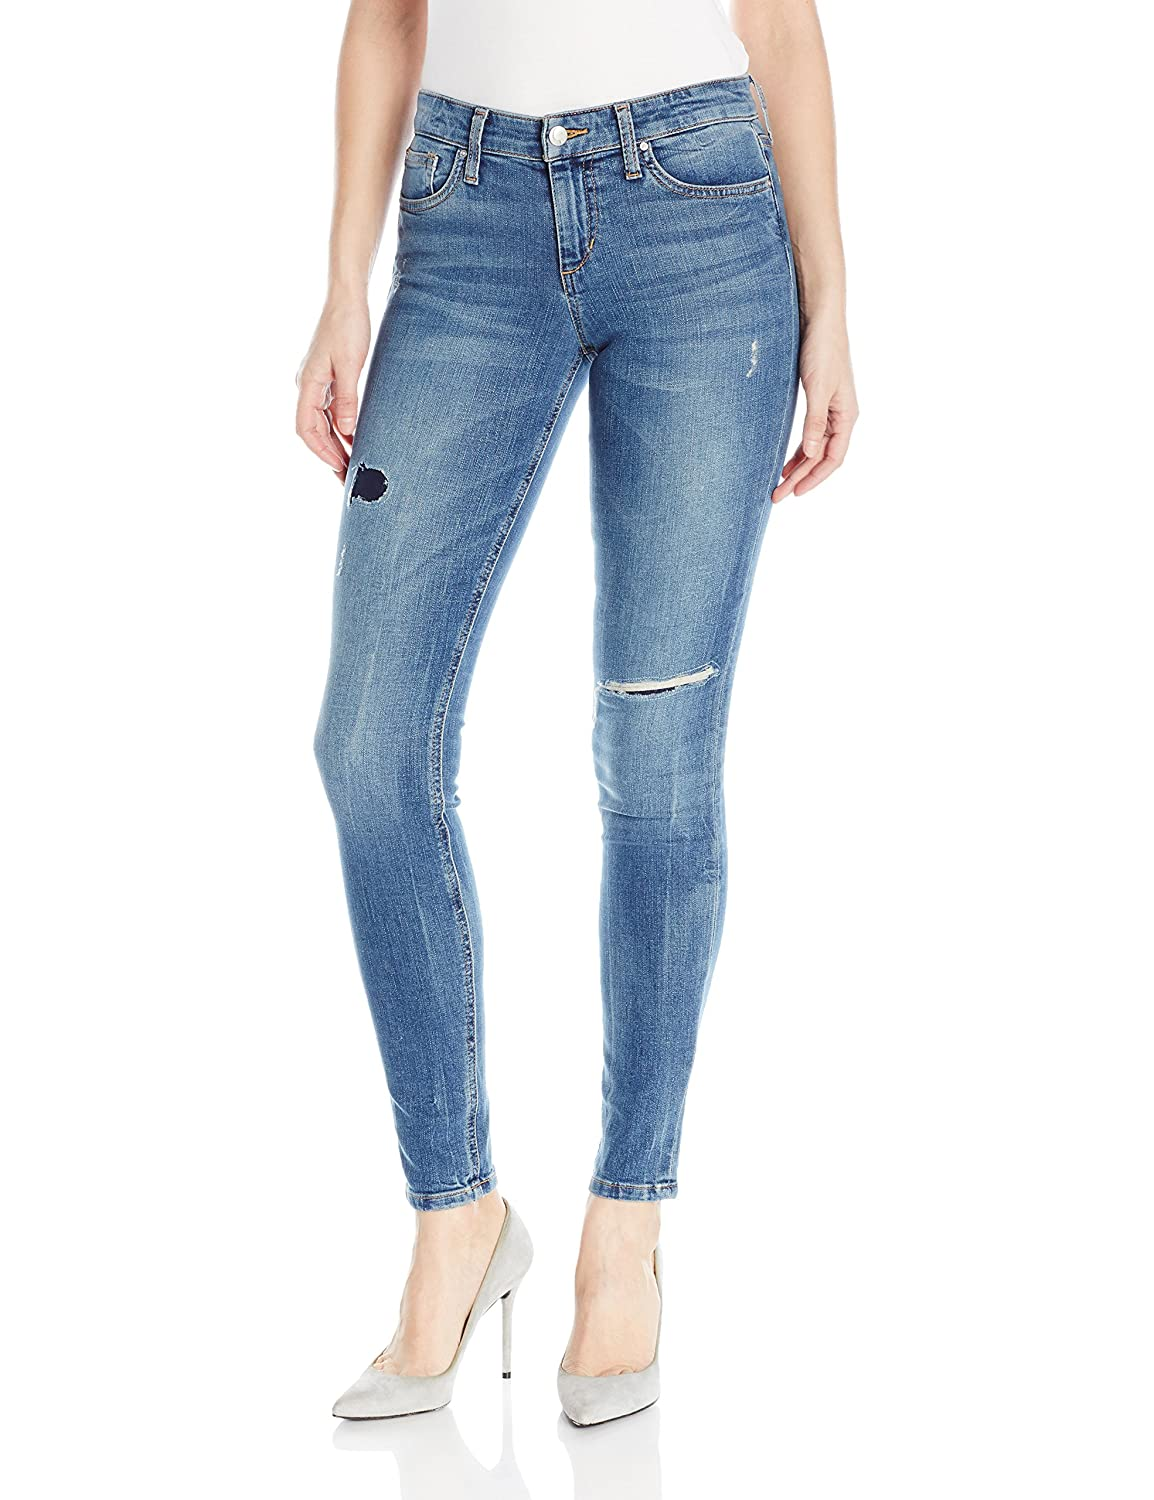 Joes Jeans Womens Flawless Icon Midrise Skinny Jean